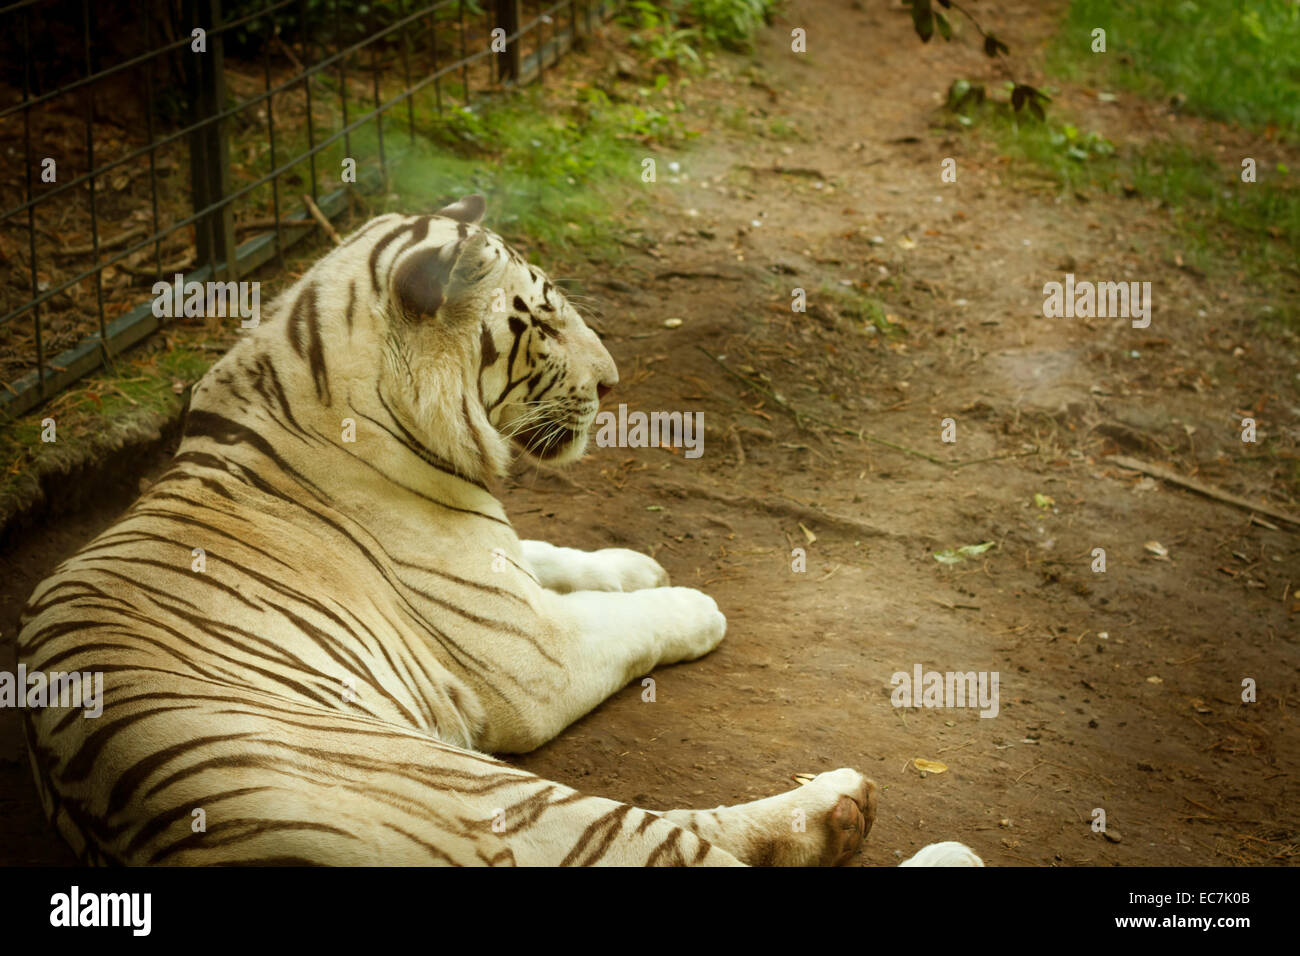 zoo parc beauval rare white tiger, France. - Stock Image